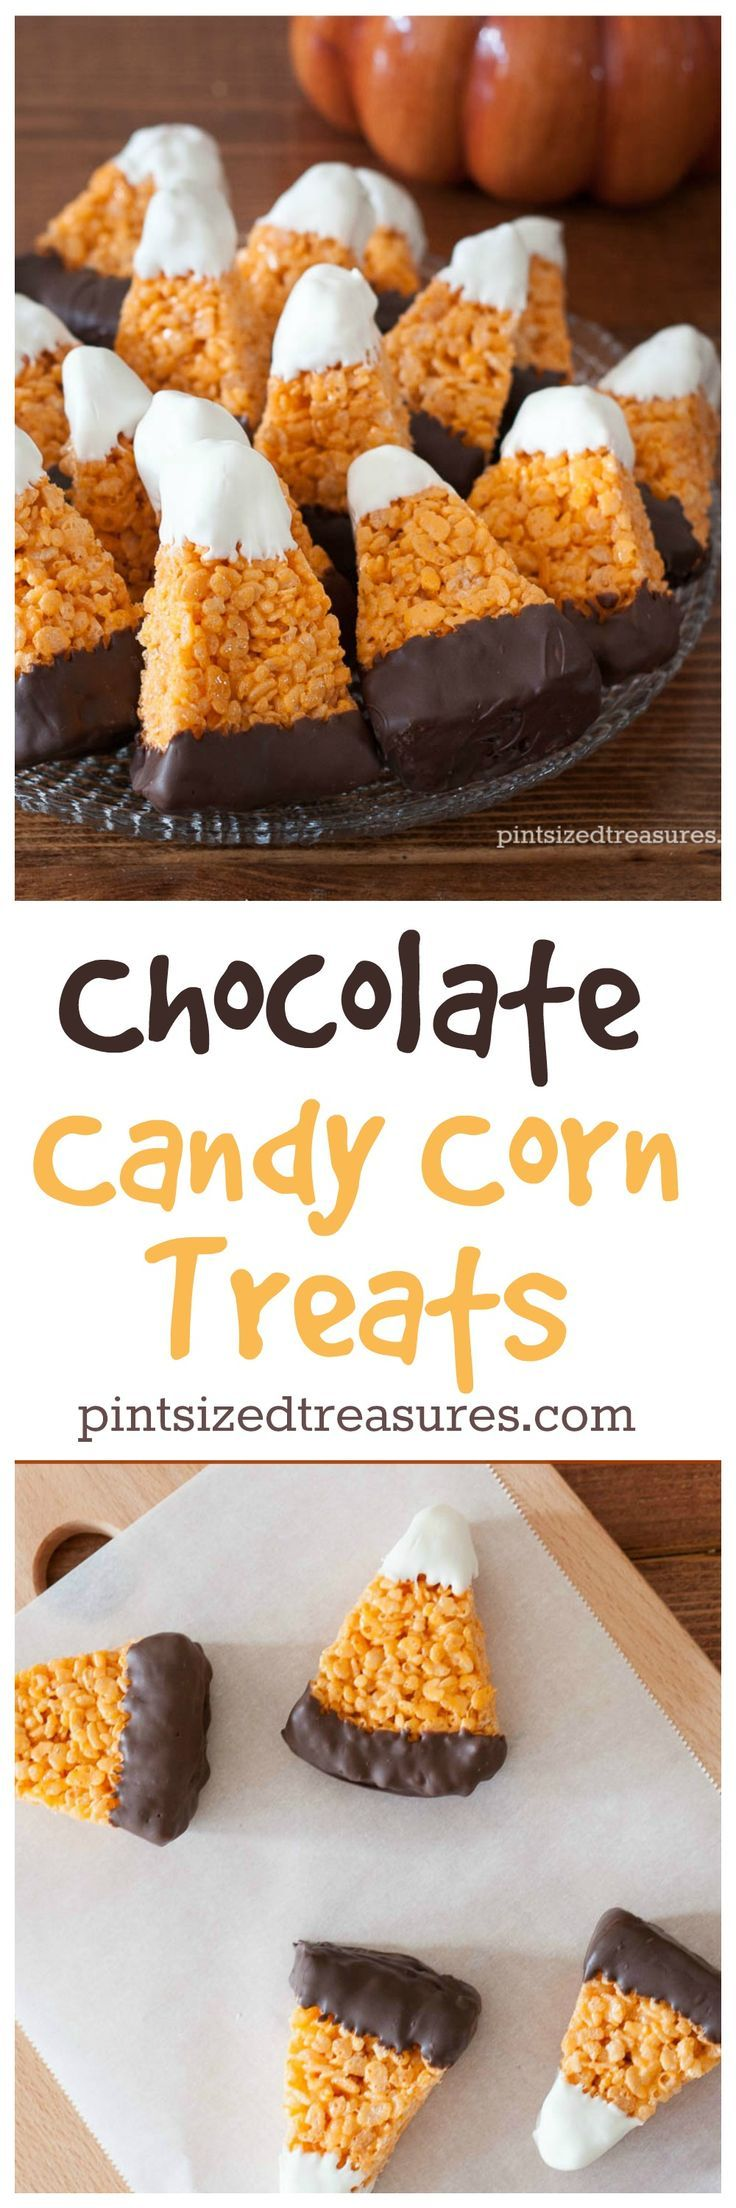 Chocolate Candy Corn Crispy Treats are super-cute. Perfect for your next fall party @alicanwrite